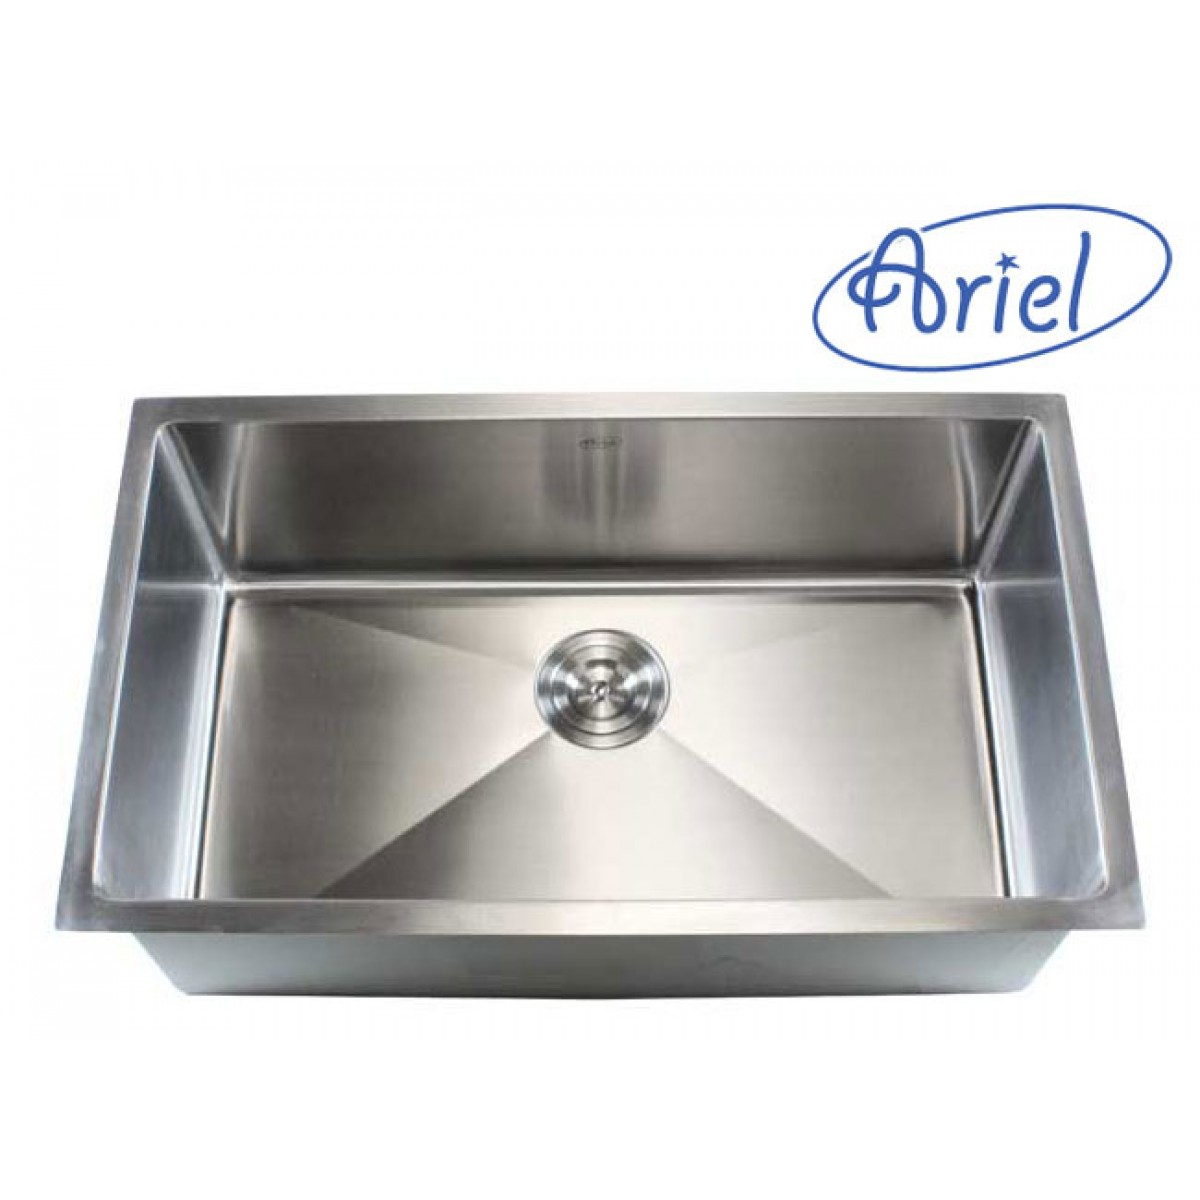 Ariel 32 Inch Stainless Steel Undermount Single Bowl Kitchen Sink ...